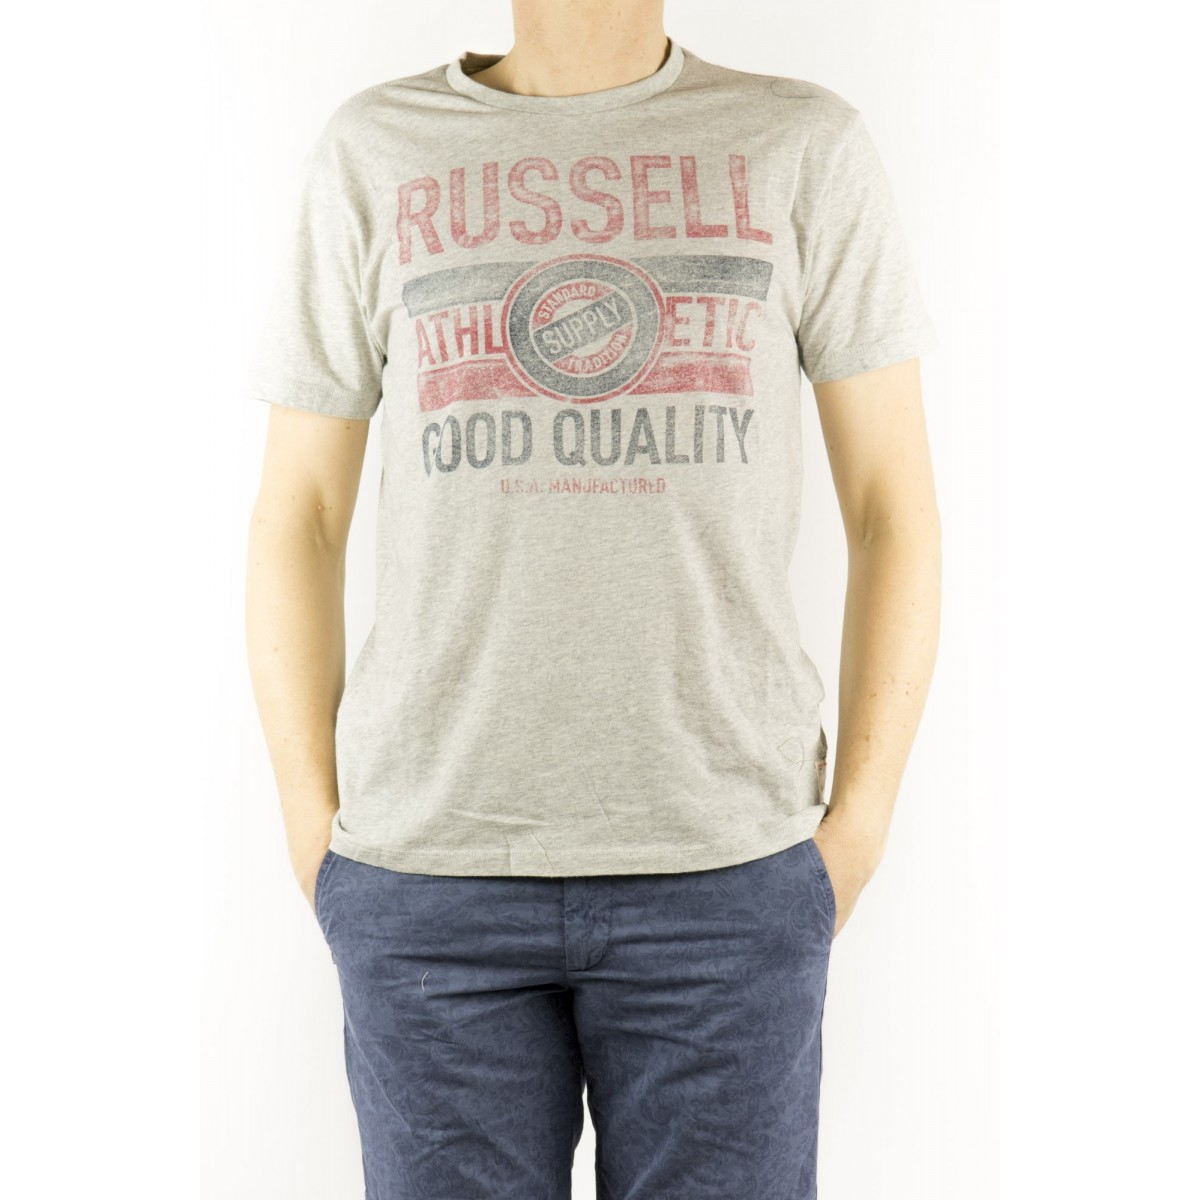 T-Shirt Russell Athletic Vintage - Russell Athletic Vintage A5 617 - 1